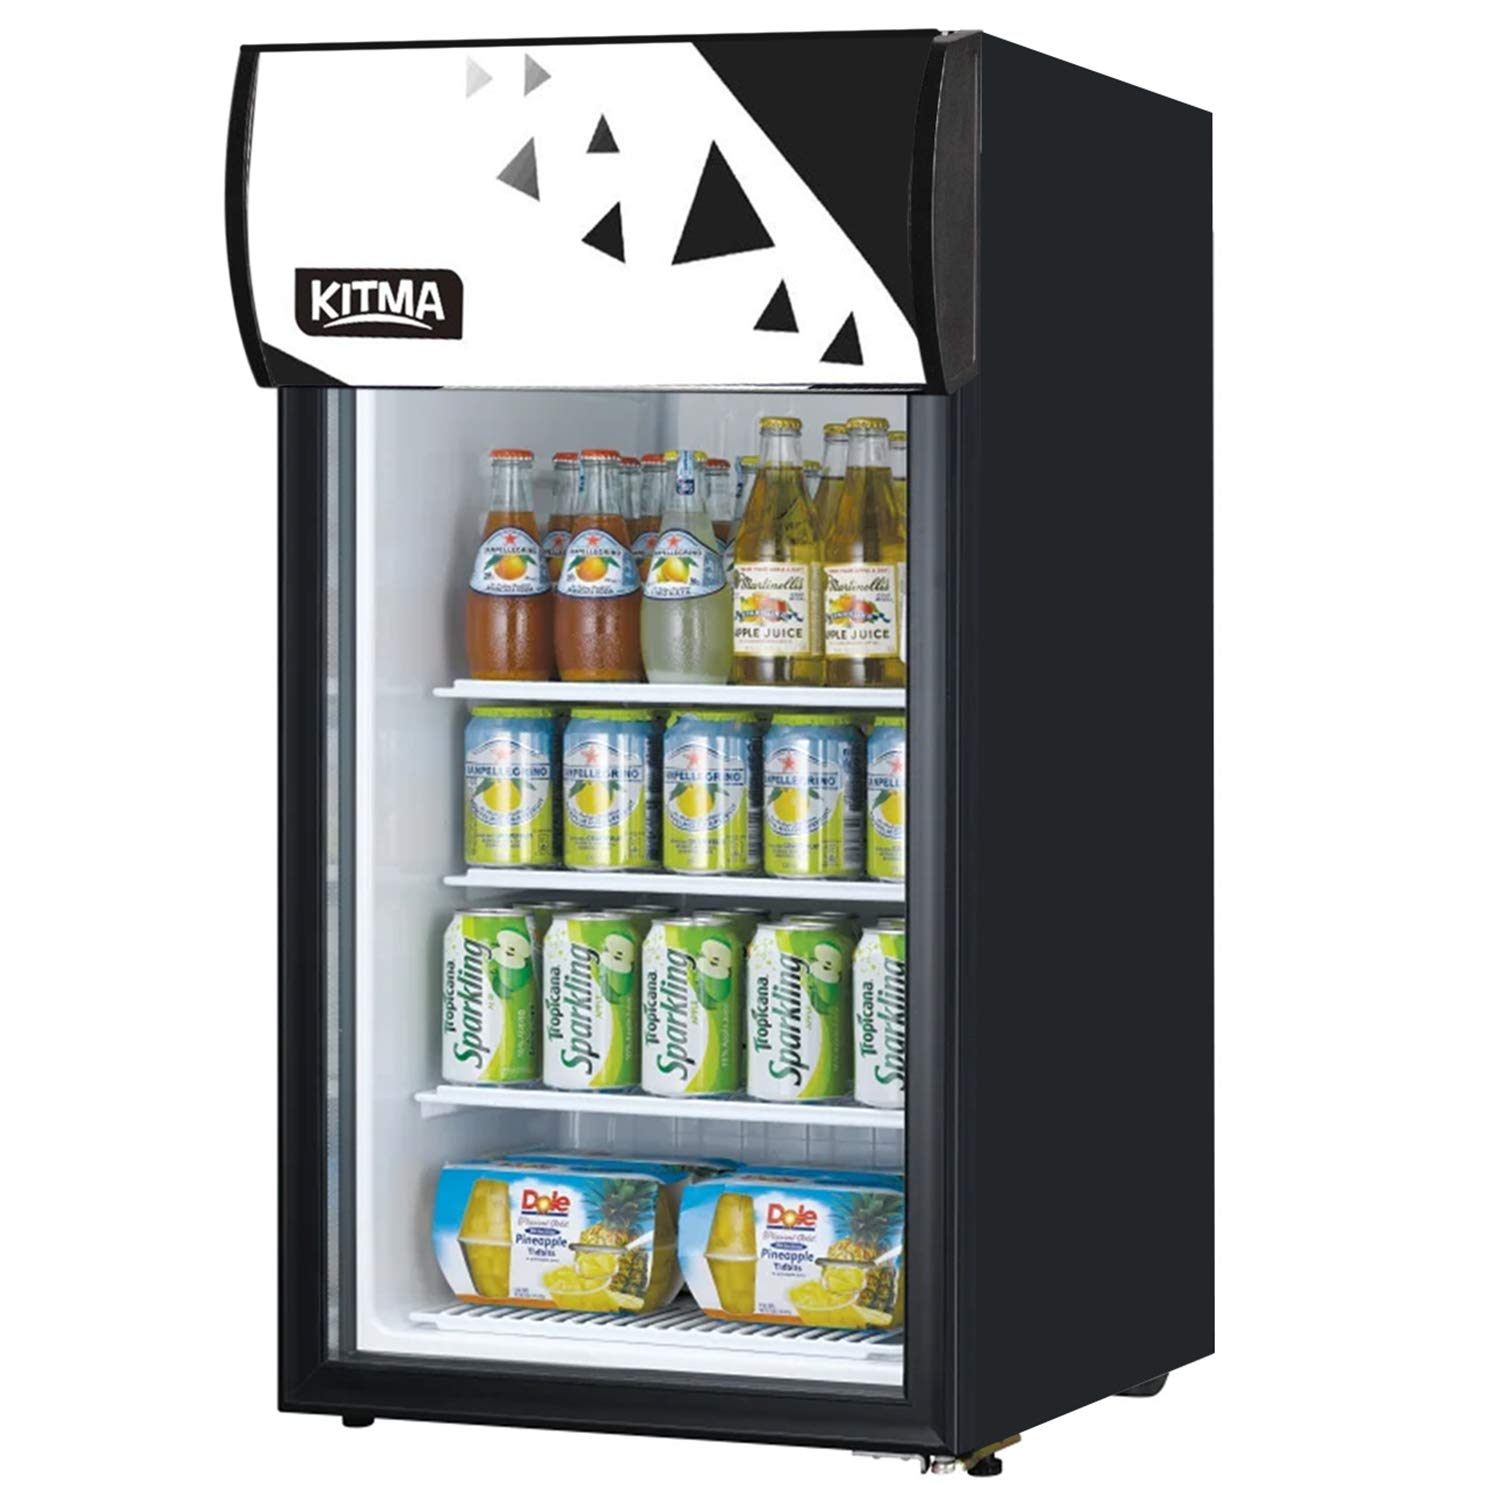 KITMA 120 Can Beverage Cooler and Refrigerator - Small Mini Fridge with Glass Door for Beer, Soda, Wine - 3 Cu. Ft Drinks Fridge for Office, Bar